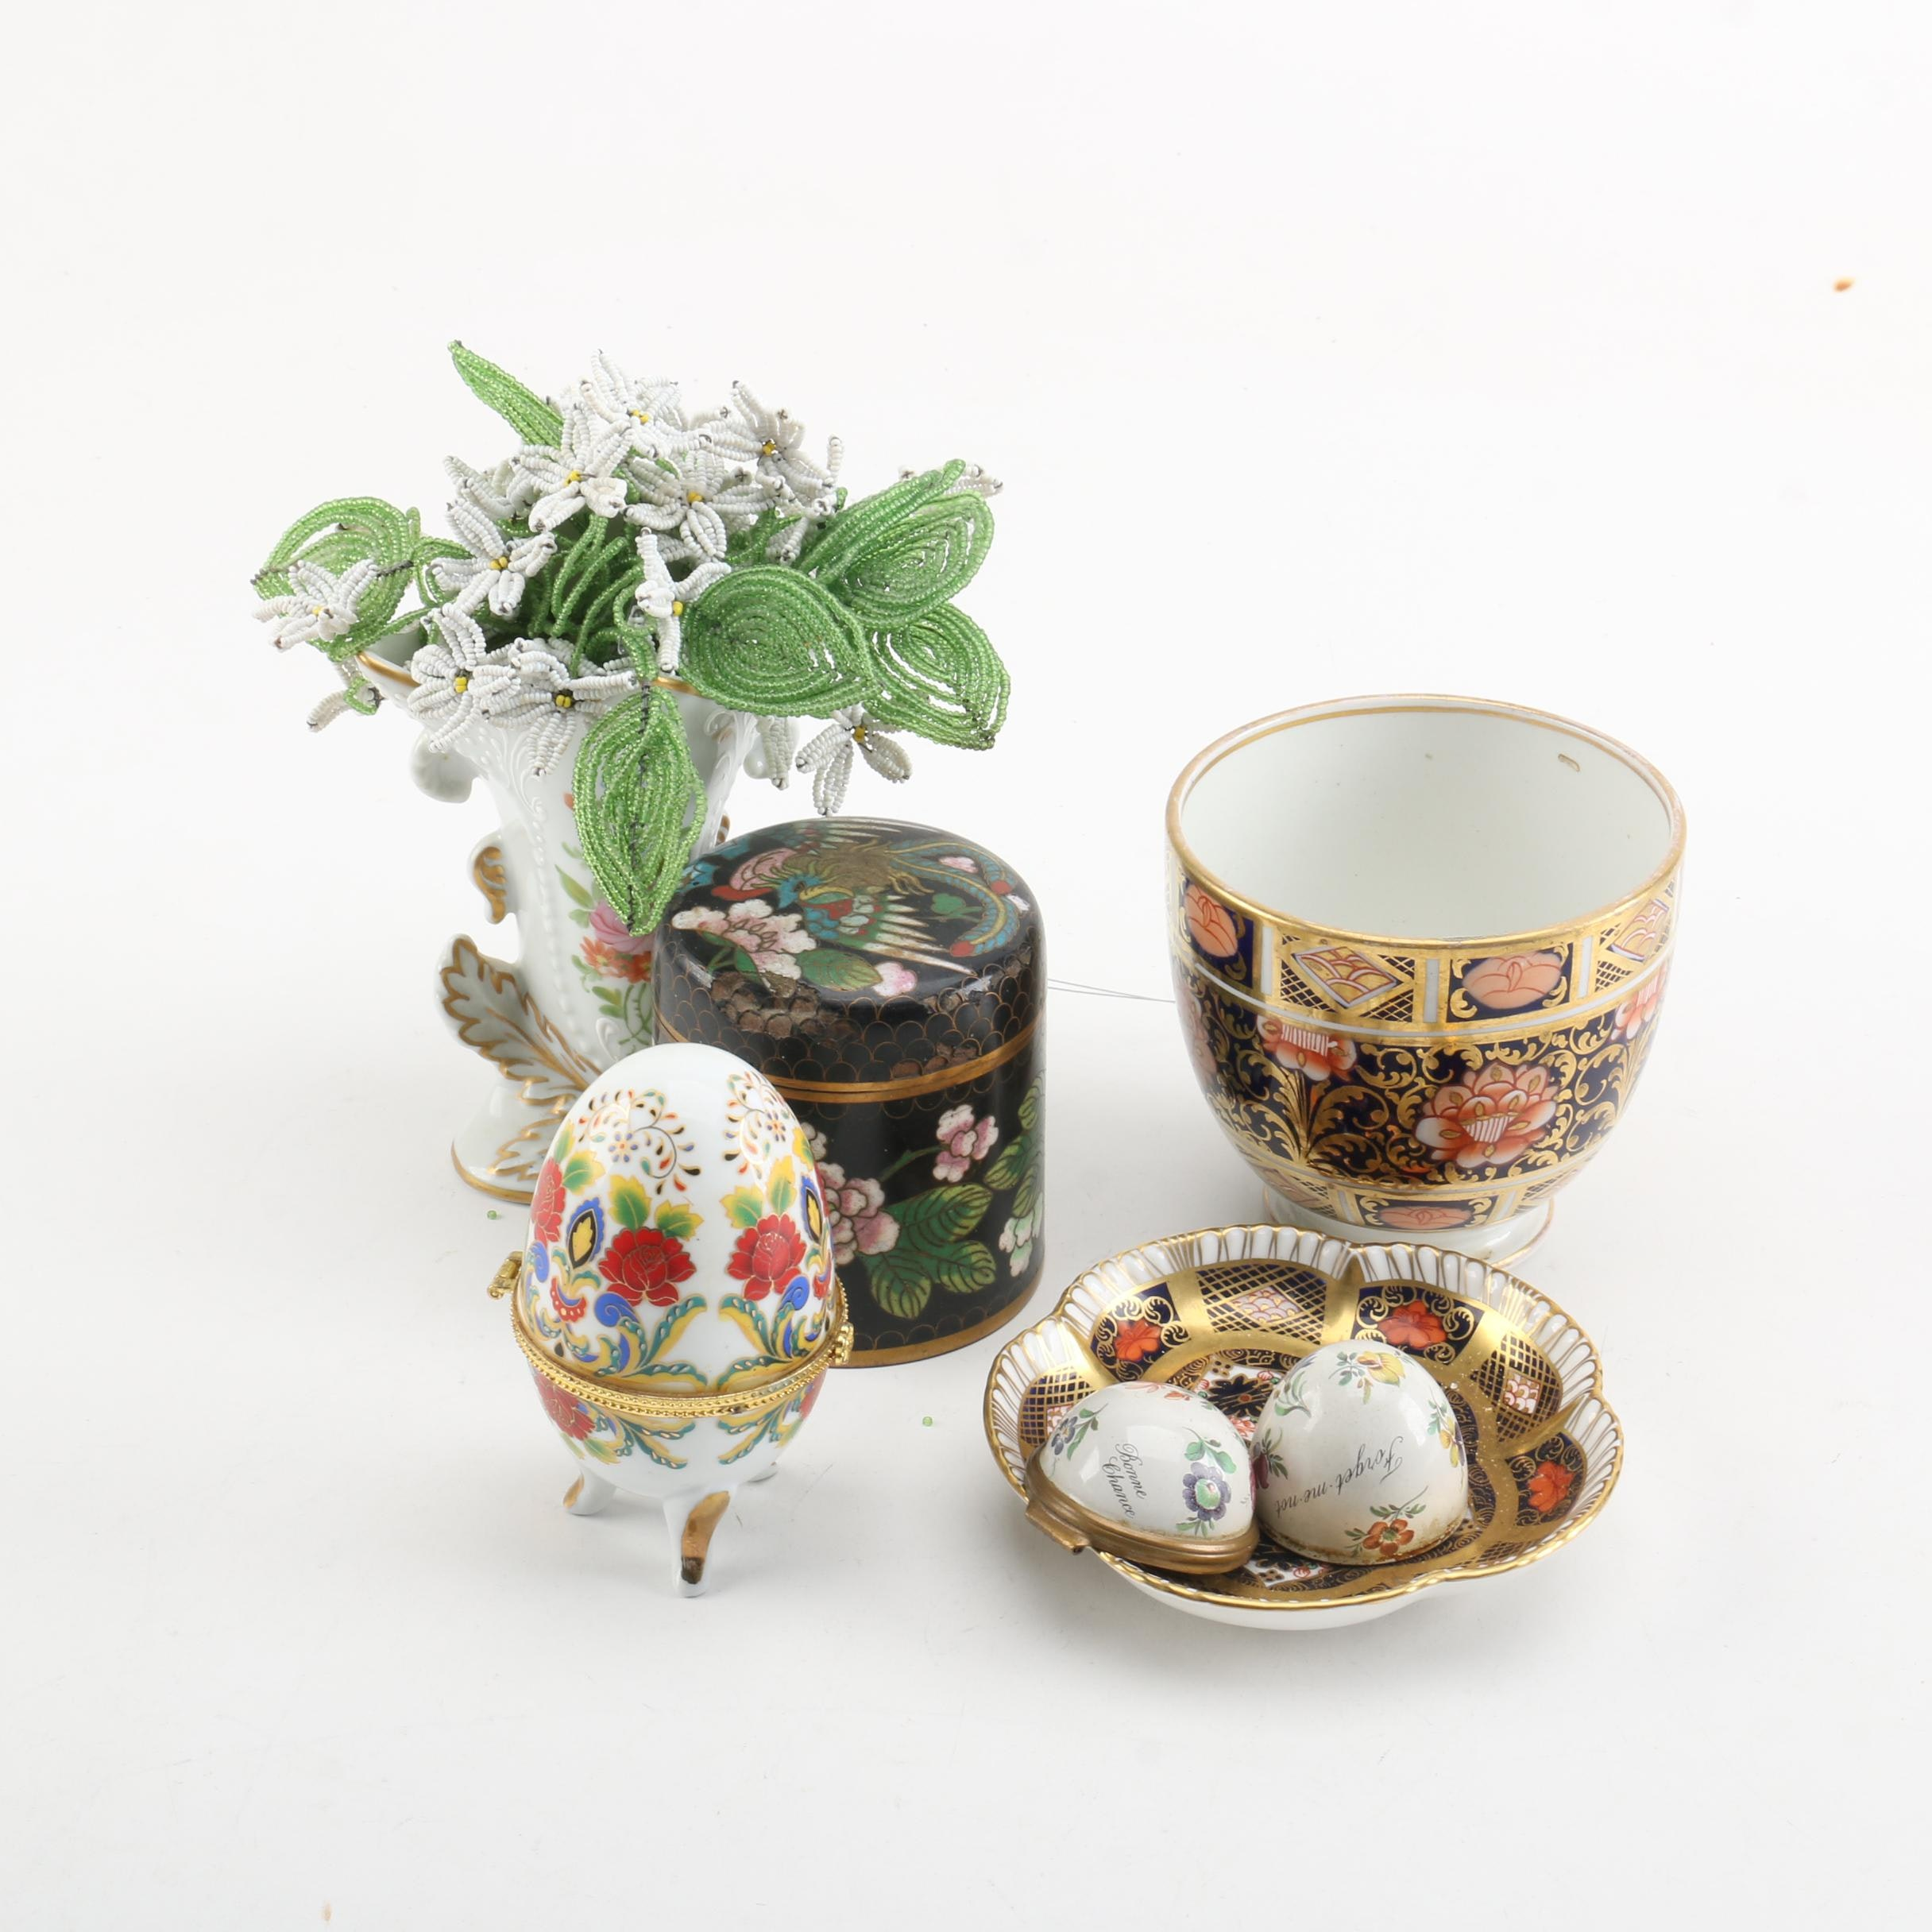 Cartier, Limoges and Royal Crown Derby Décor